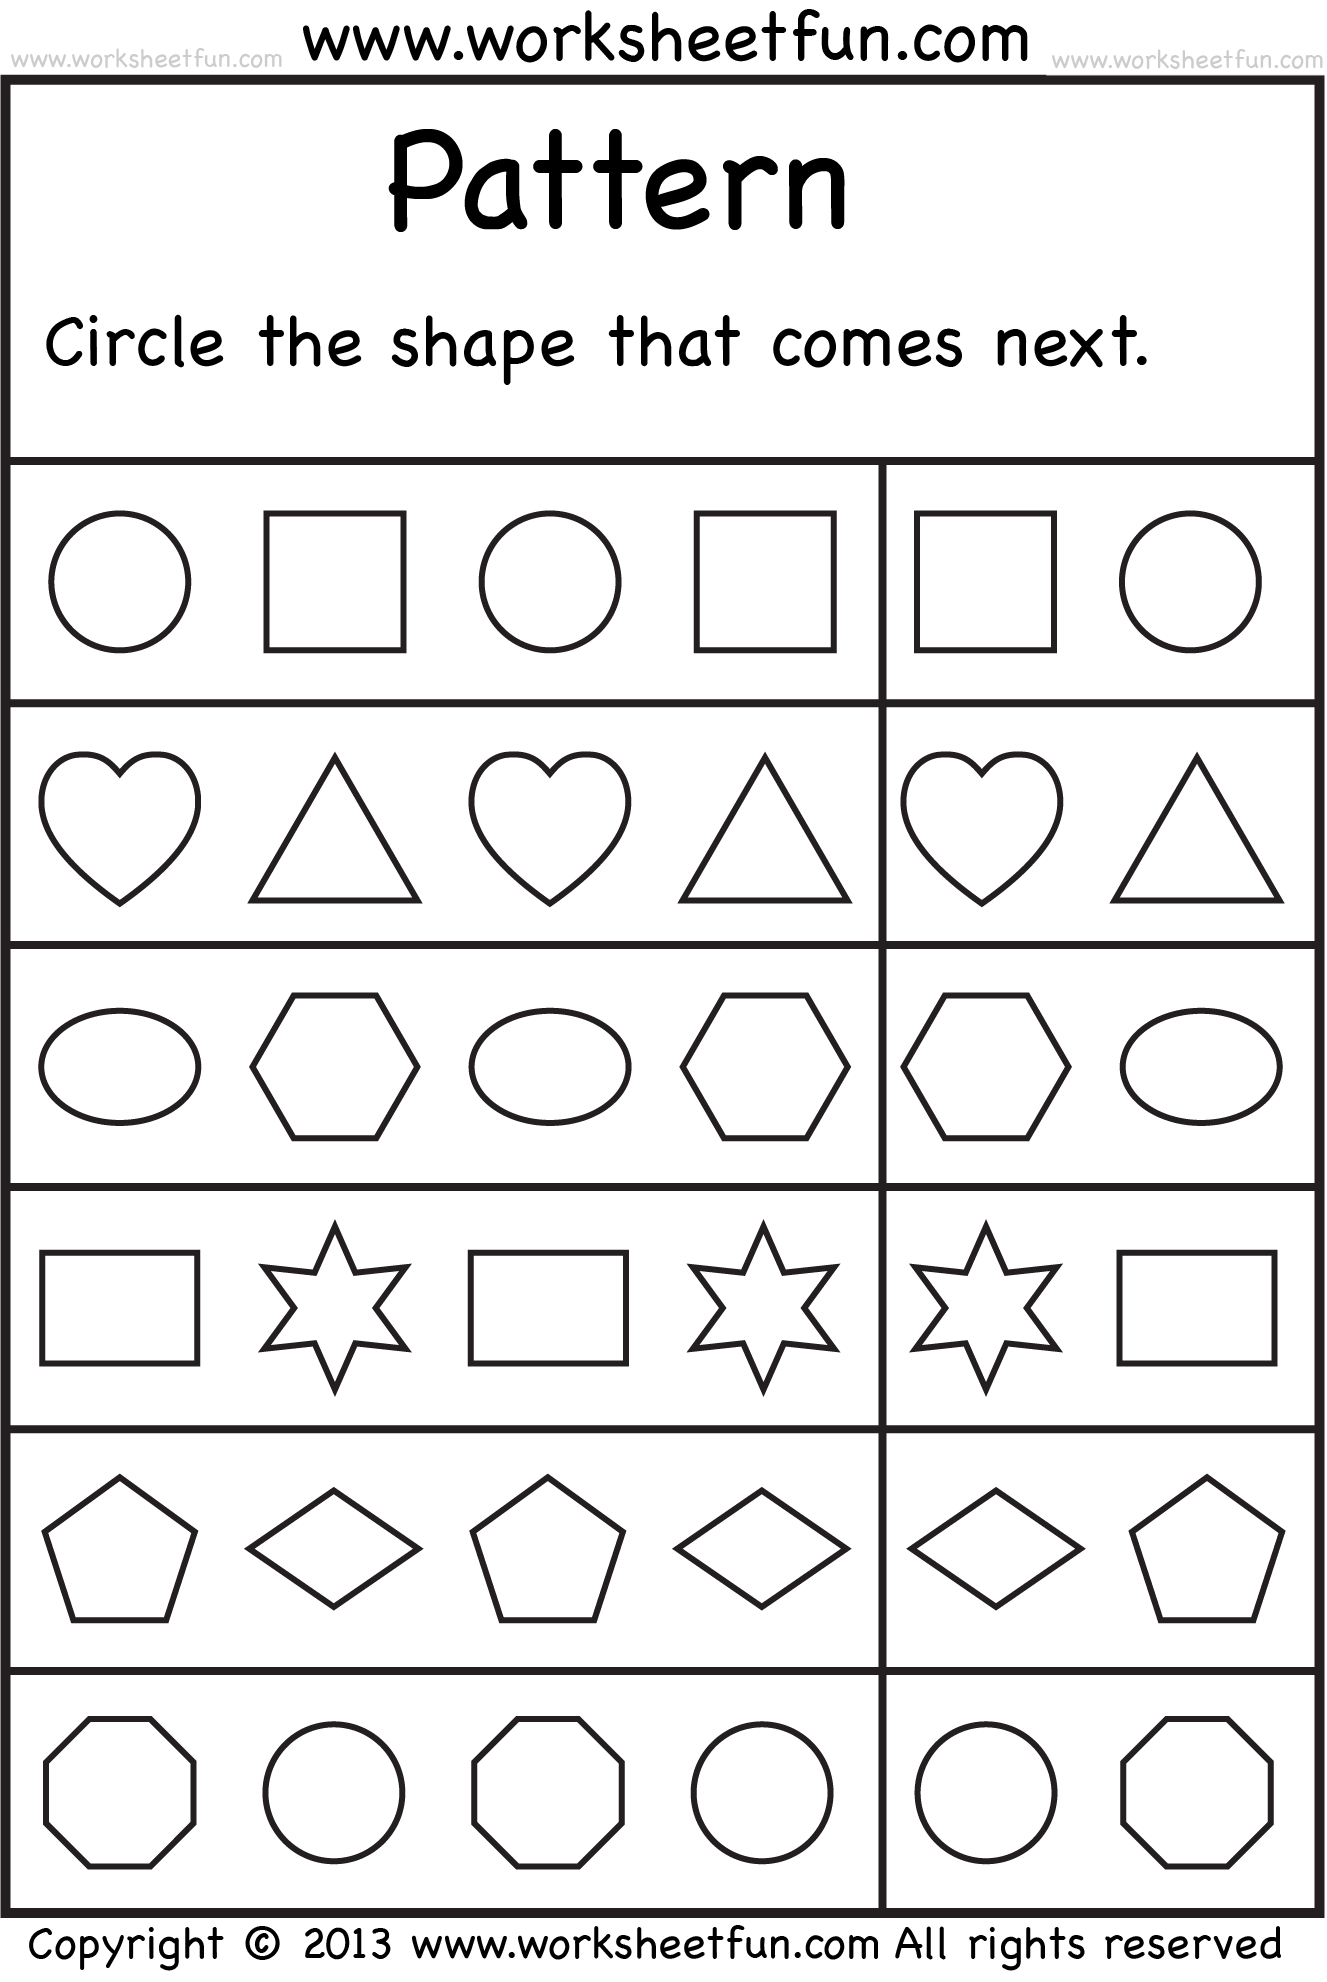 Weirdmailus  Fascinating  Images About School Worksheets On Pinterest  Number Words  With Glamorous  Images About School Worksheets On Pinterest  Number Words Alphabet Worksheets And Free Printable Kindergarten Worksheets With Nice Accounting Trial Balance Worksheet Also It Family Worksheet In Addition Bar Graph Worksheets Grade  And The Twits Worksheets As Well As Worksheet Tabs Additionally  Addition Facts Worksheet From Pinterestcom With Weirdmailus  Glamorous  Images About School Worksheets On Pinterest  Number Words  With Nice  Images About School Worksheets On Pinterest  Number Words Alphabet Worksheets And Free Printable Kindergarten Worksheets And Fascinating Accounting Trial Balance Worksheet Also It Family Worksheet In Addition Bar Graph Worksheets Grade  From Pinterestcom